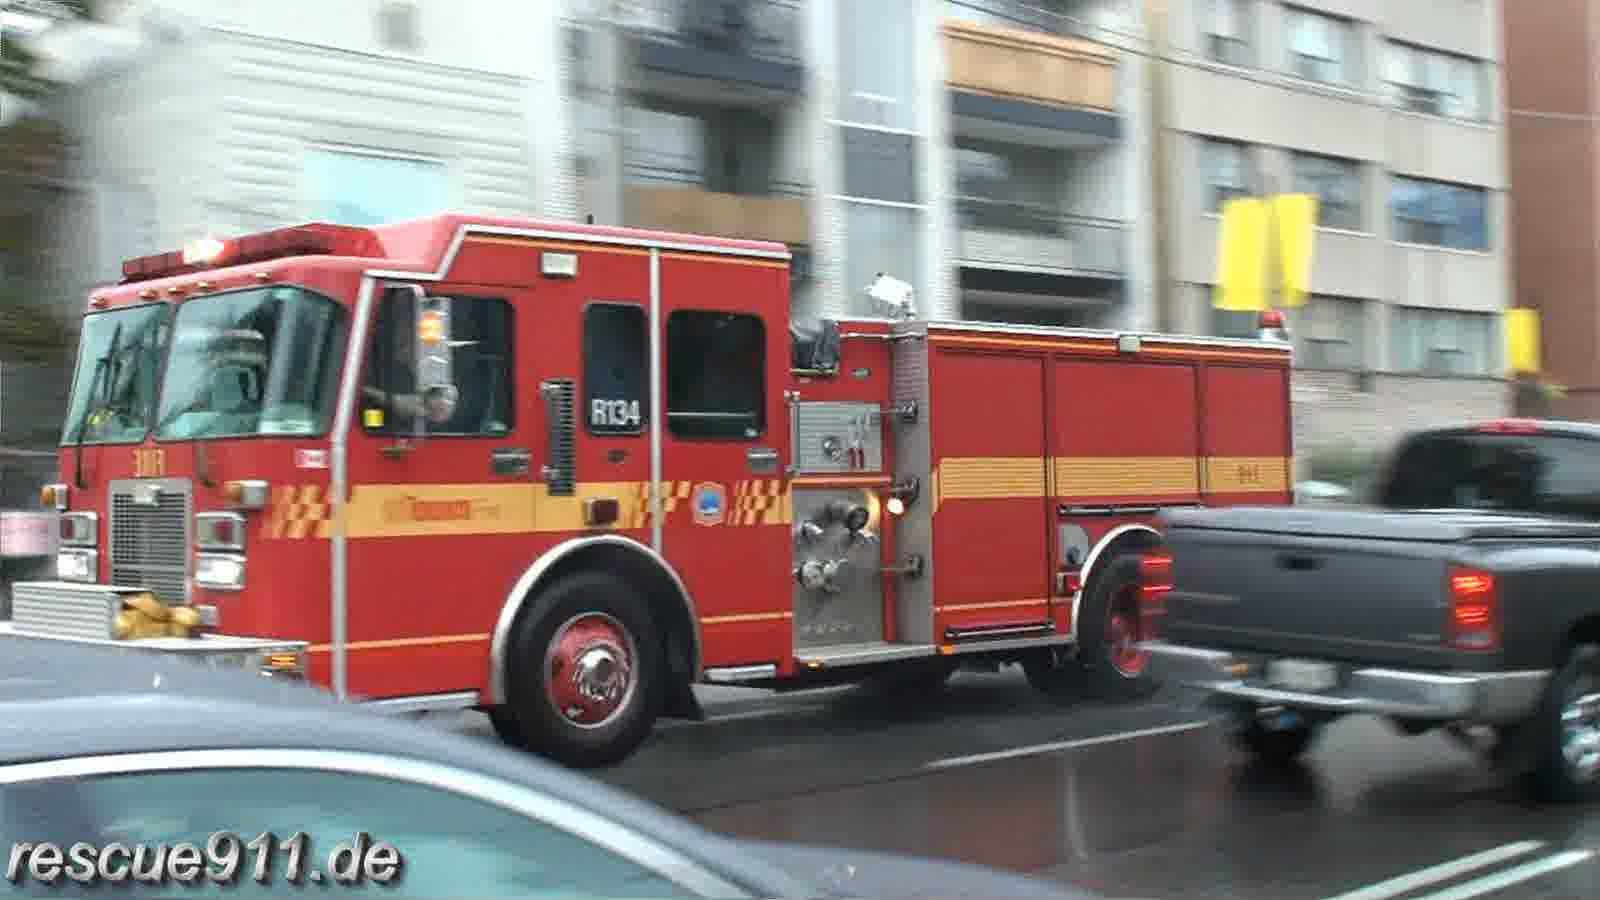 Rescue pump 134 Toronto Fire Services (stream)